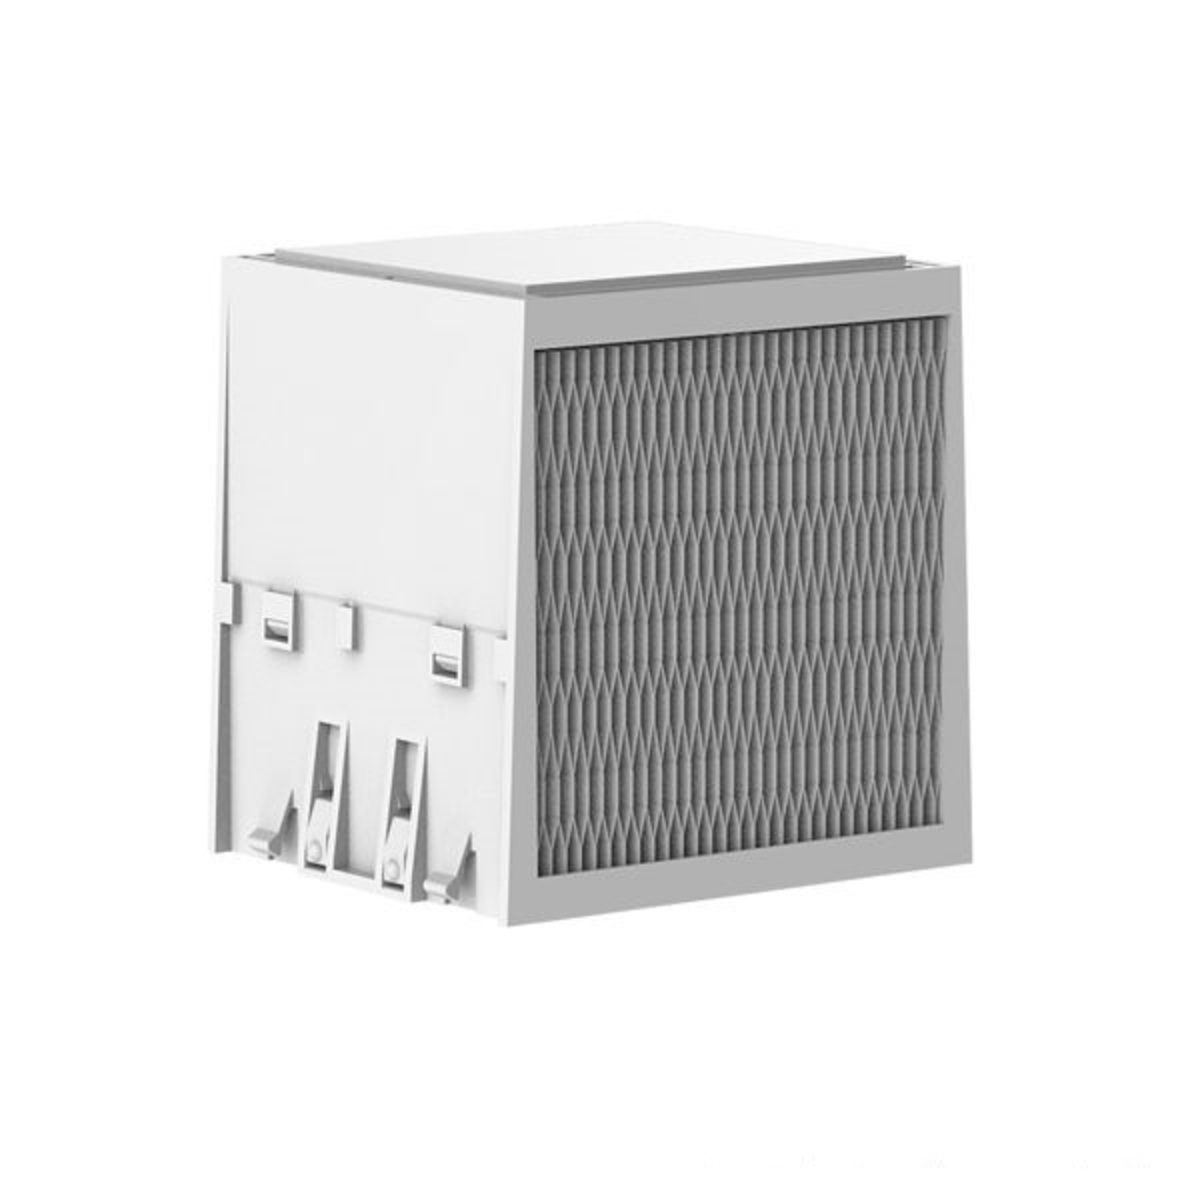 G2T-ICE Portable Negative Ion Micro Air Conditioner - Filter [Not including the Air Conditioner]